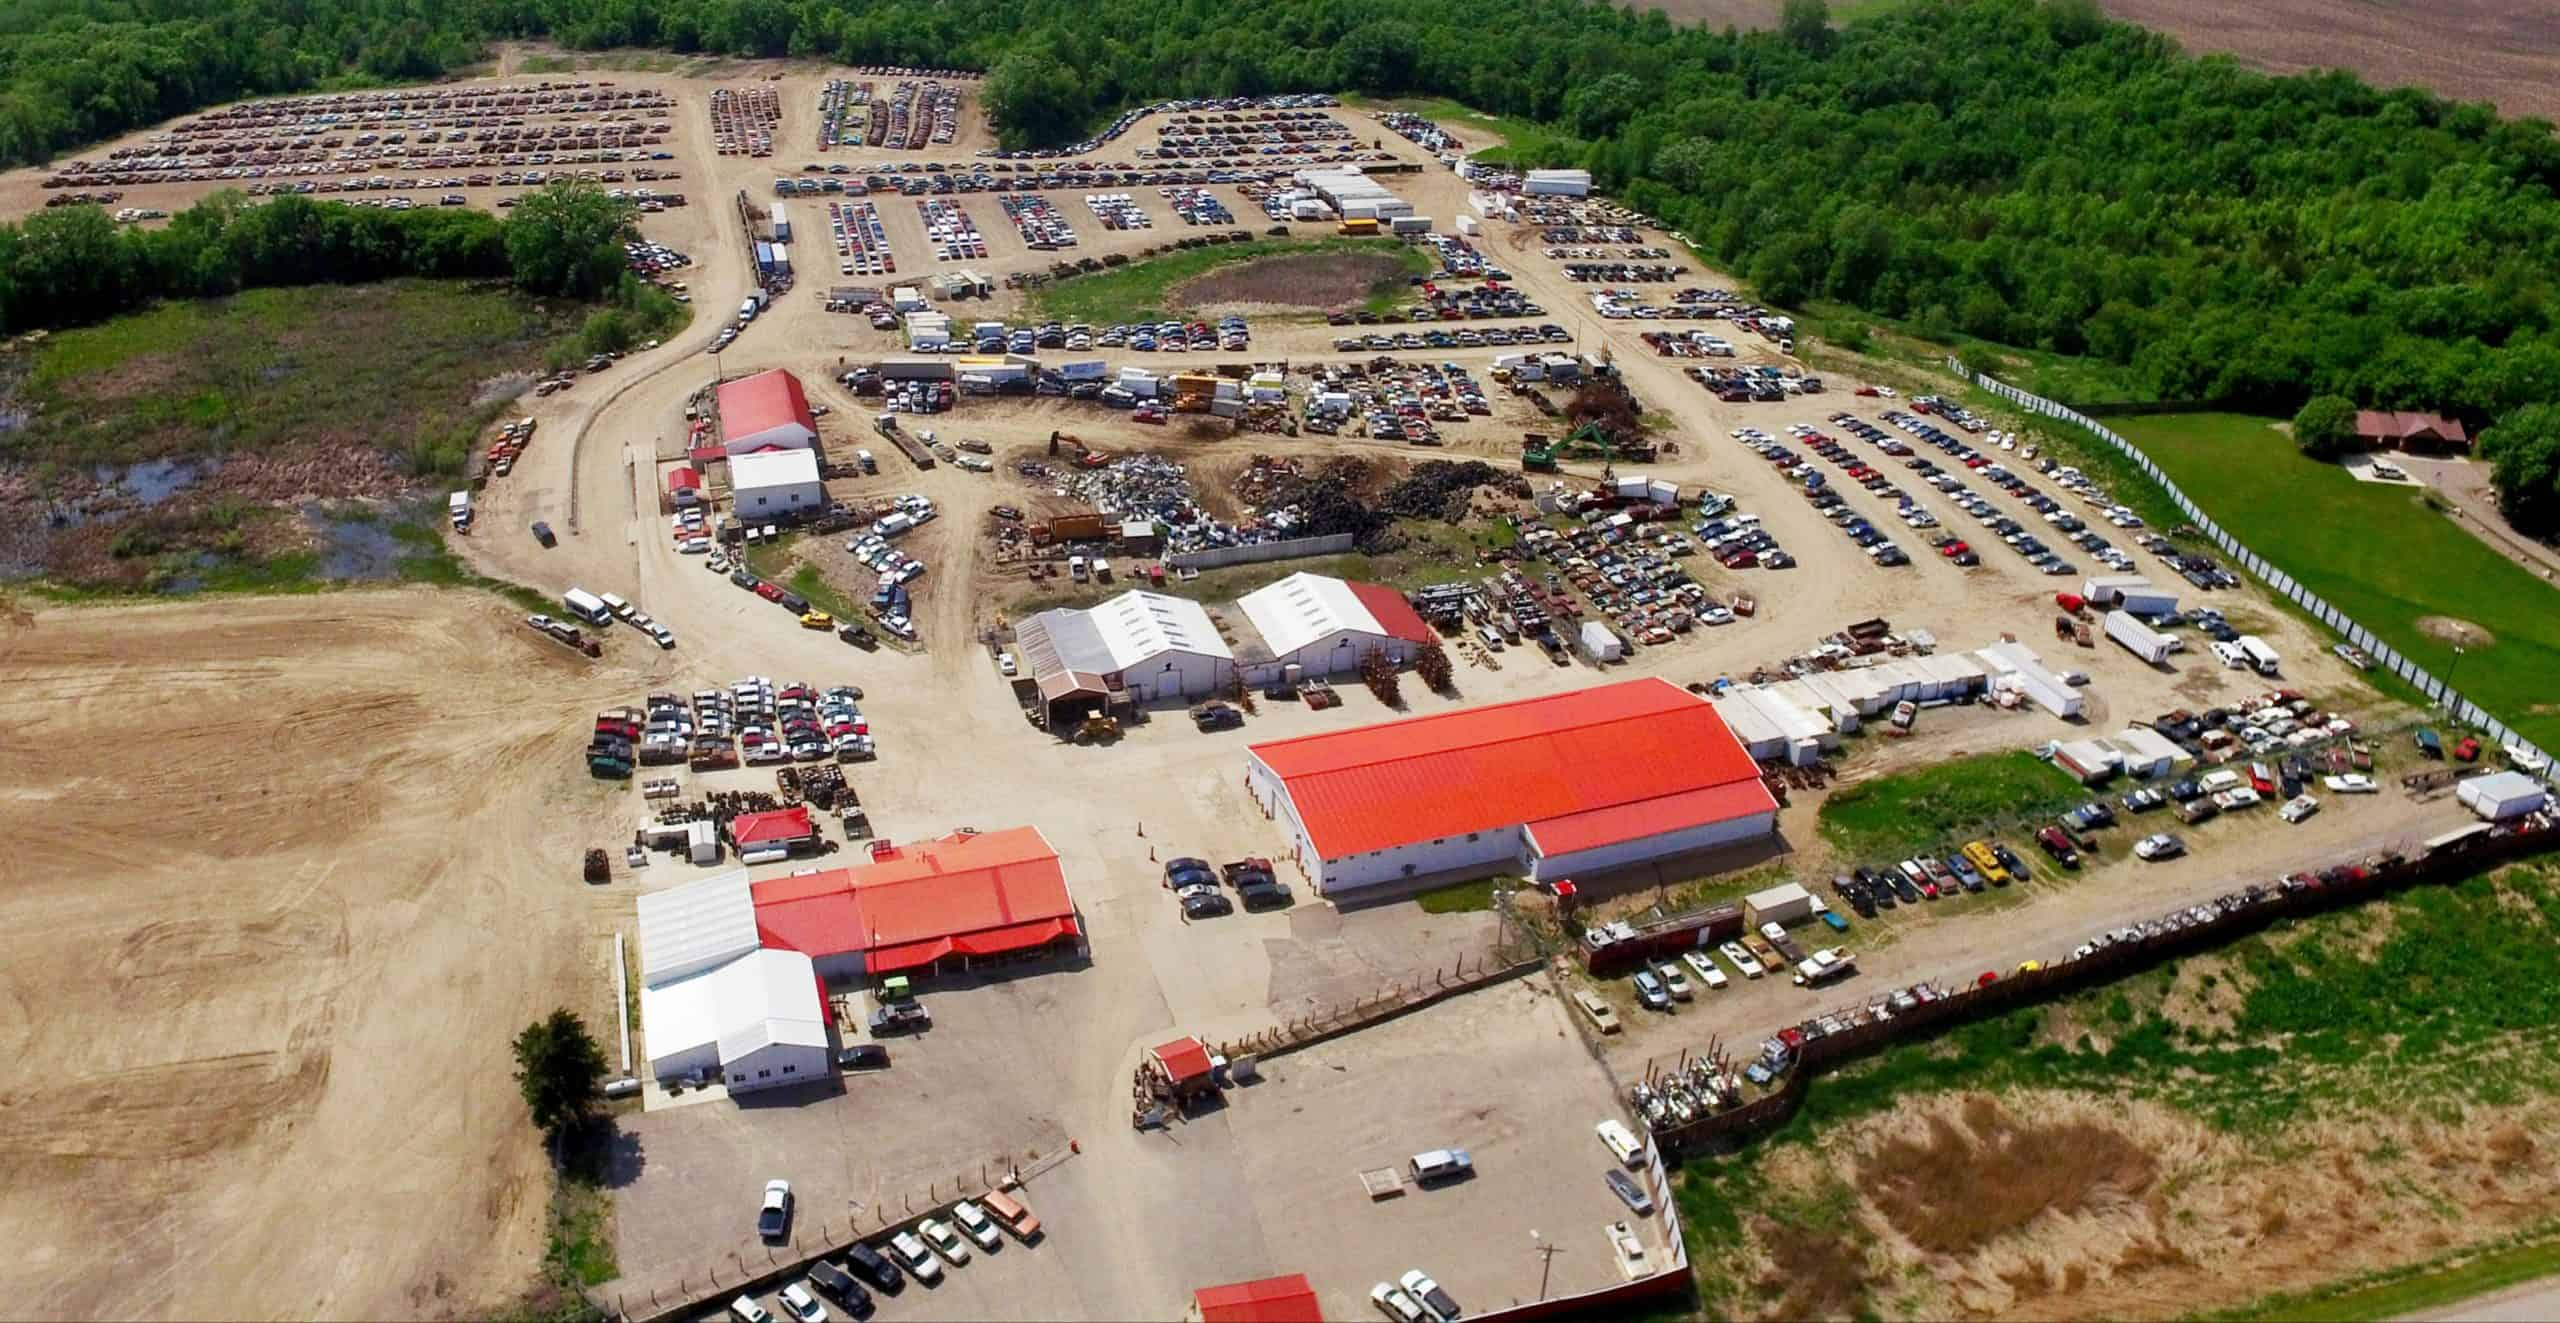 French Lake Auto Parts aerial view